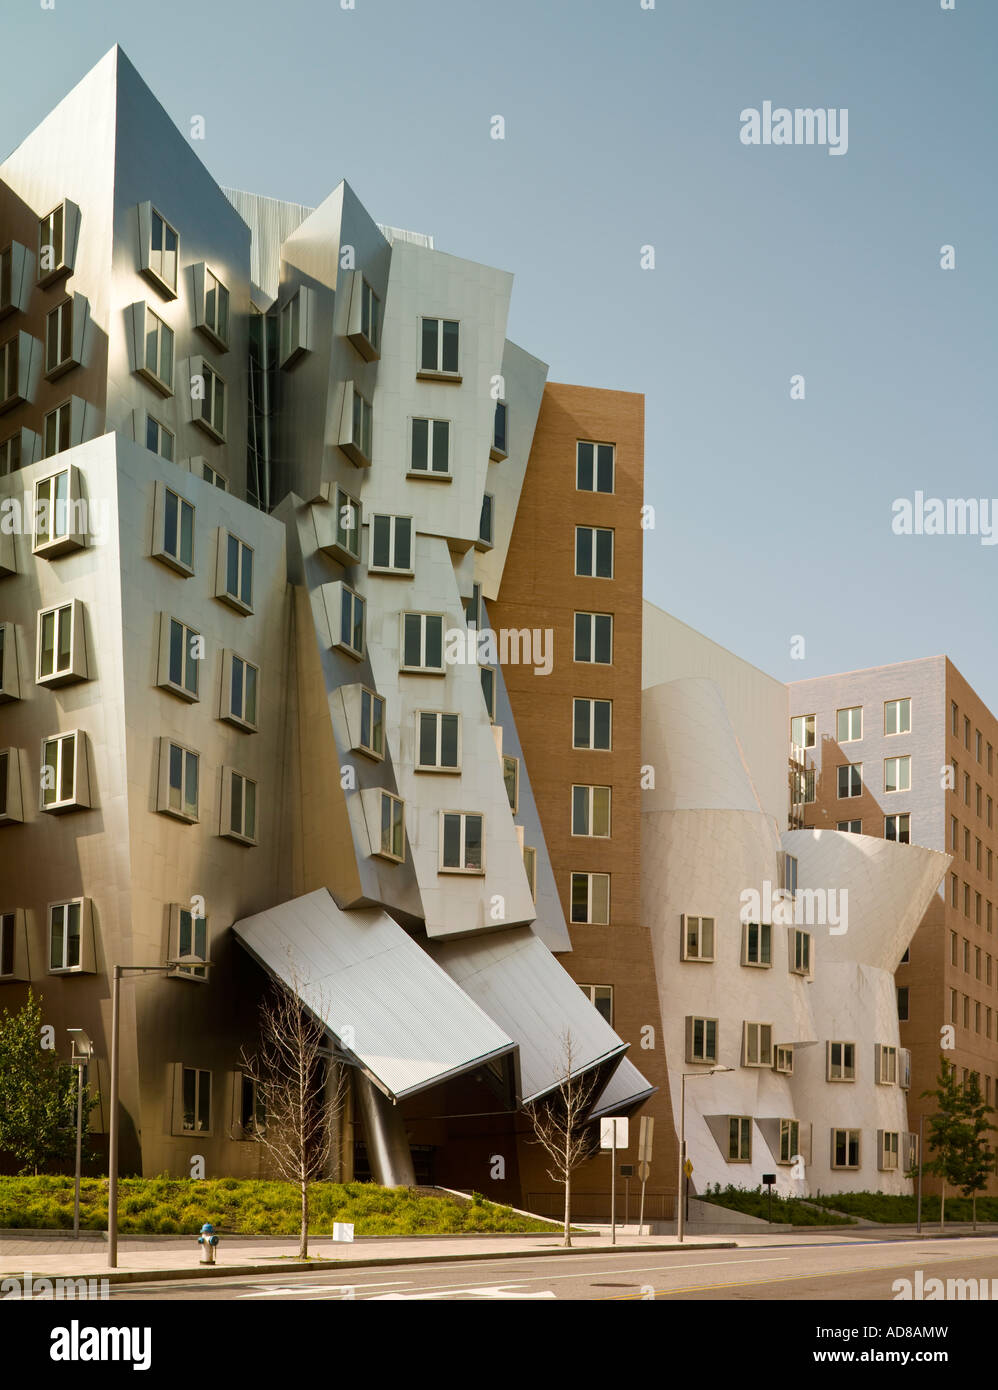 The Ray and Maria Stata Center for Computer, Information, and Intelligence Sciences, MIT, Cambridge, Massachusetts, - Stock Image